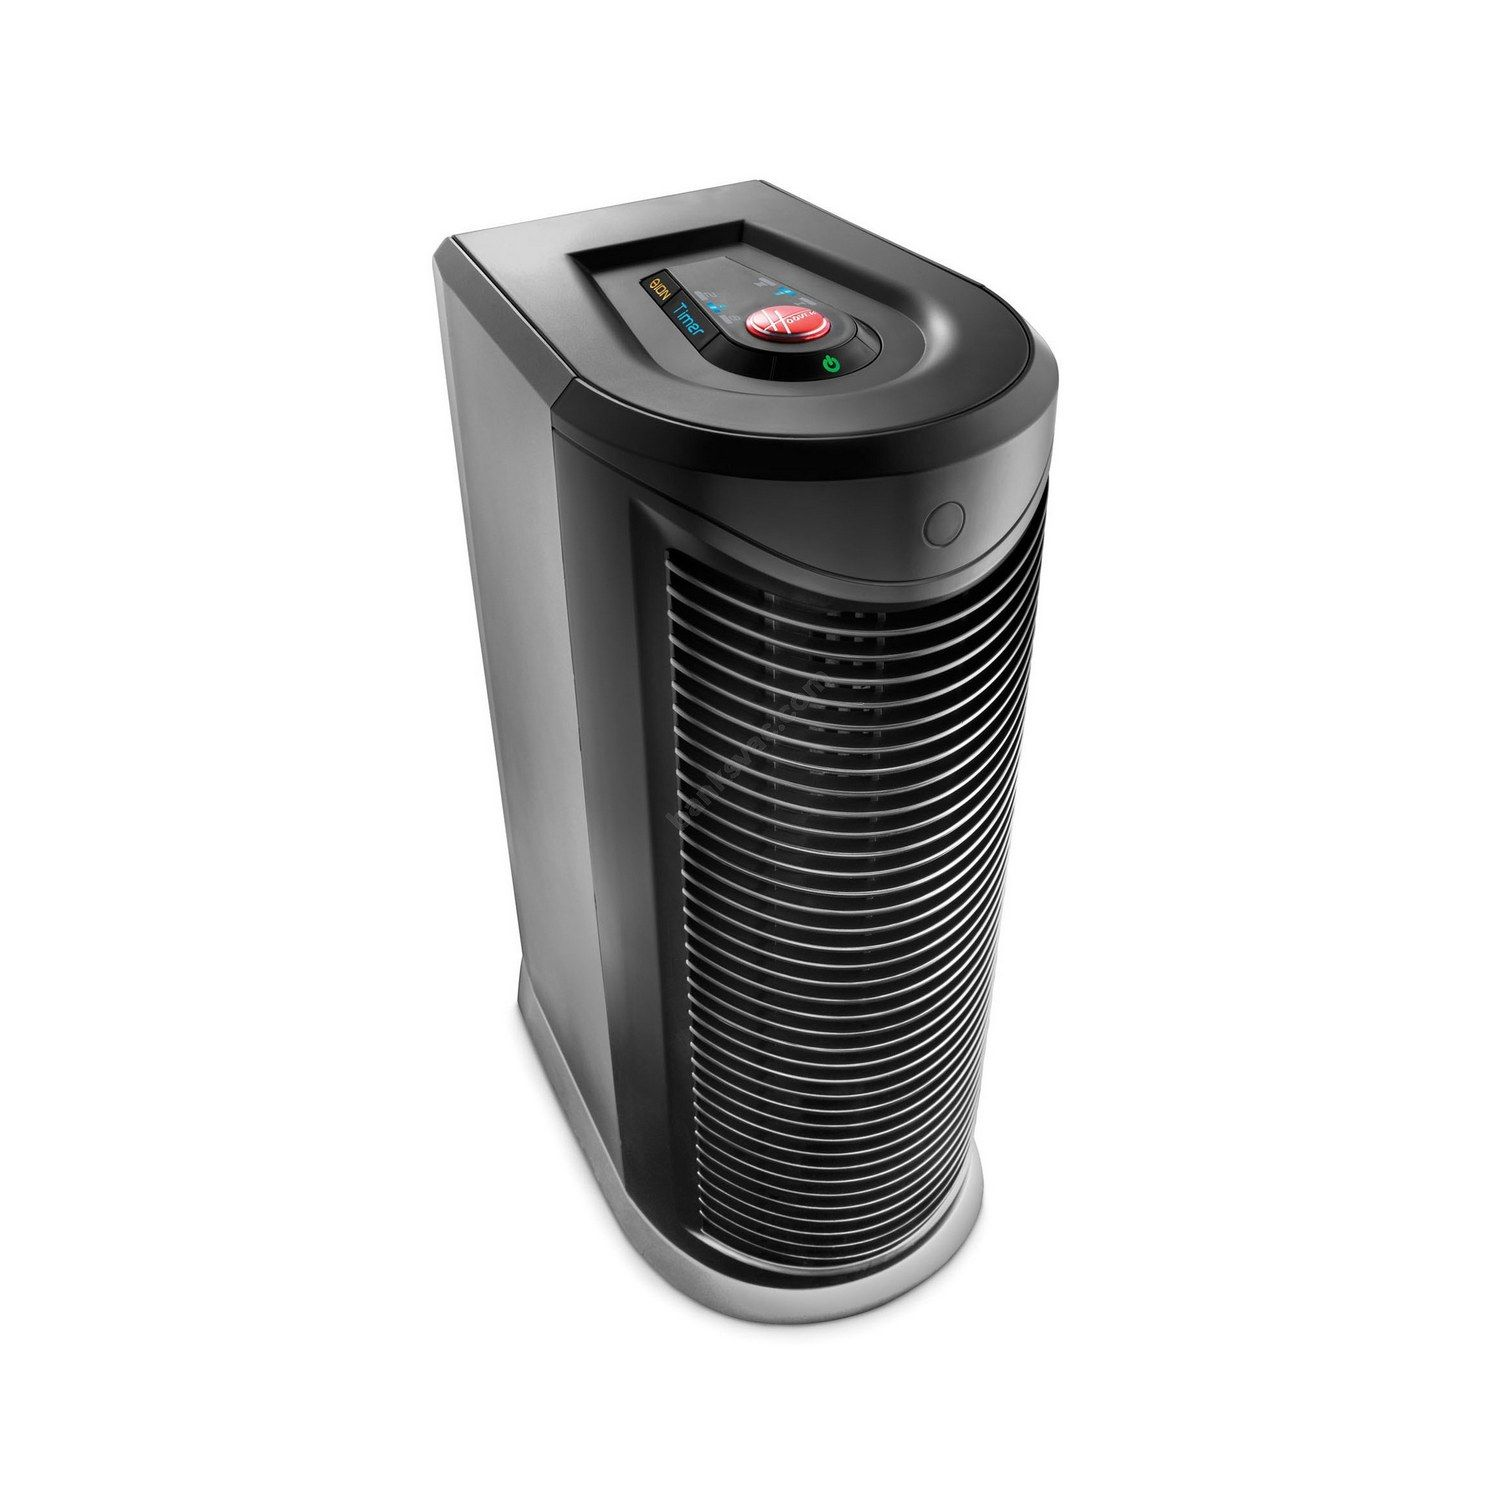 The Sharp Model Of Air Purifier In Specific Style Air